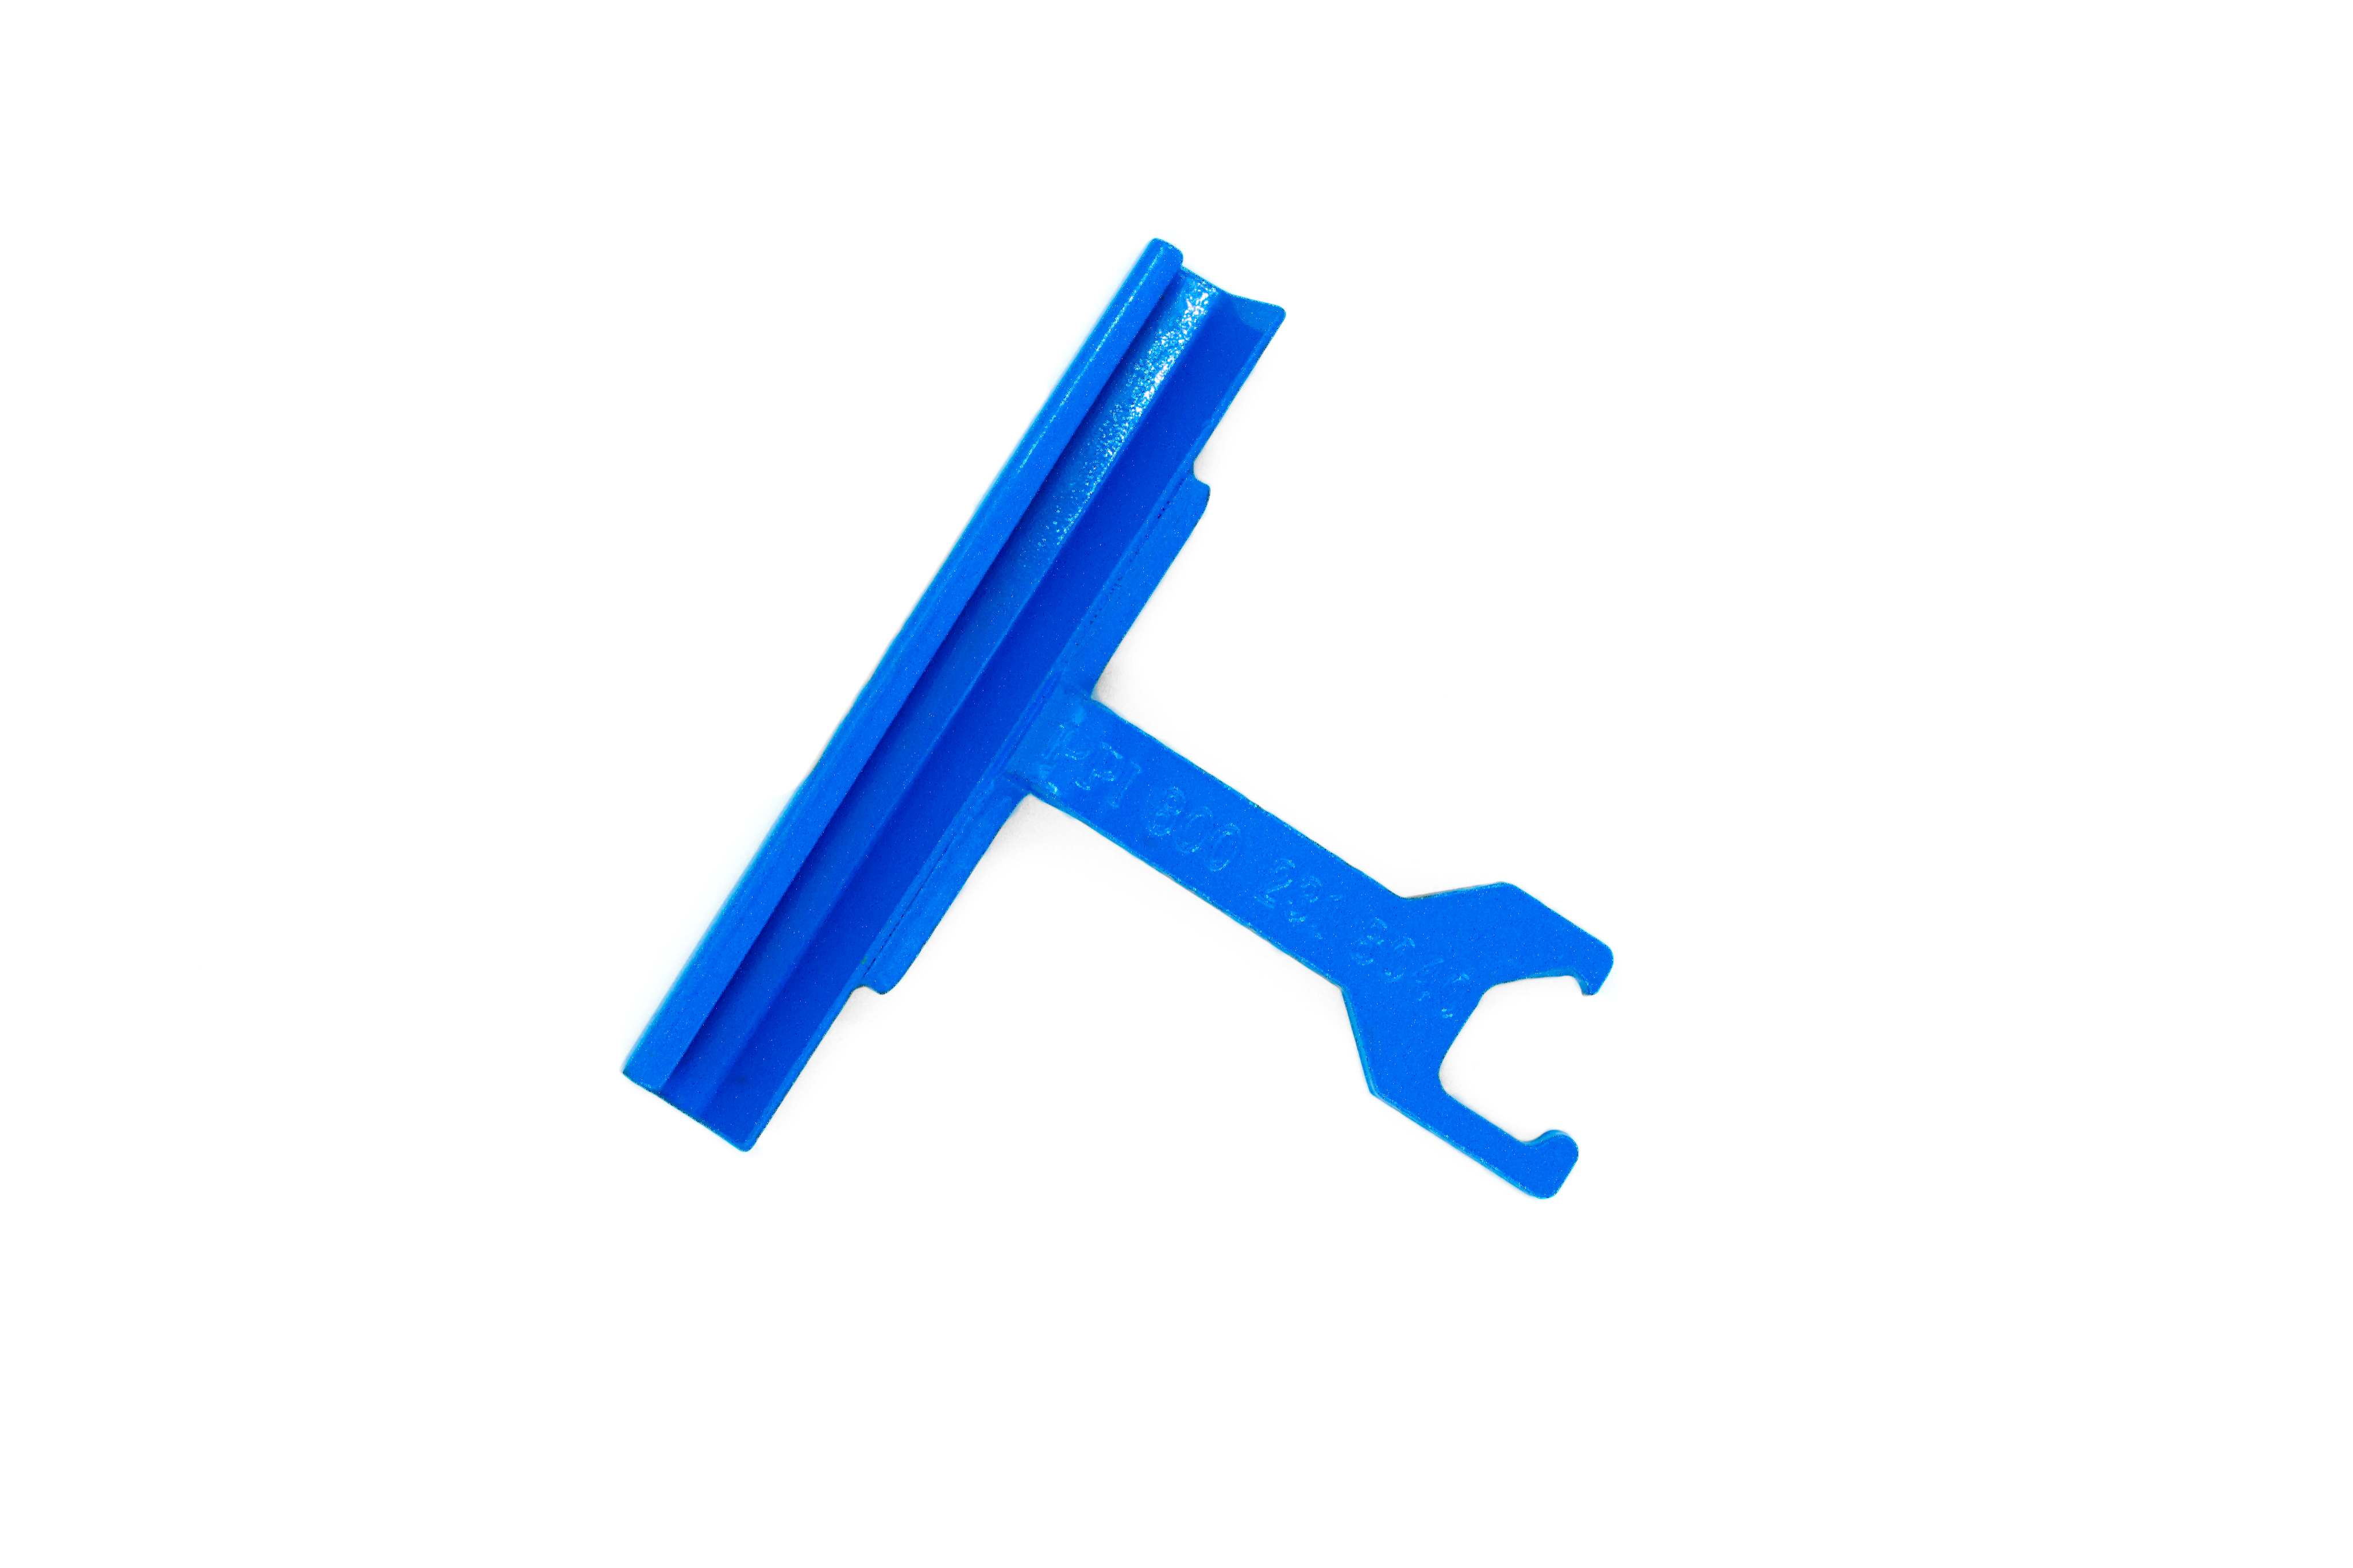 Tdc Tdf Clip Cleat Duct Tool 4 Hvac Transverse Duct Connection